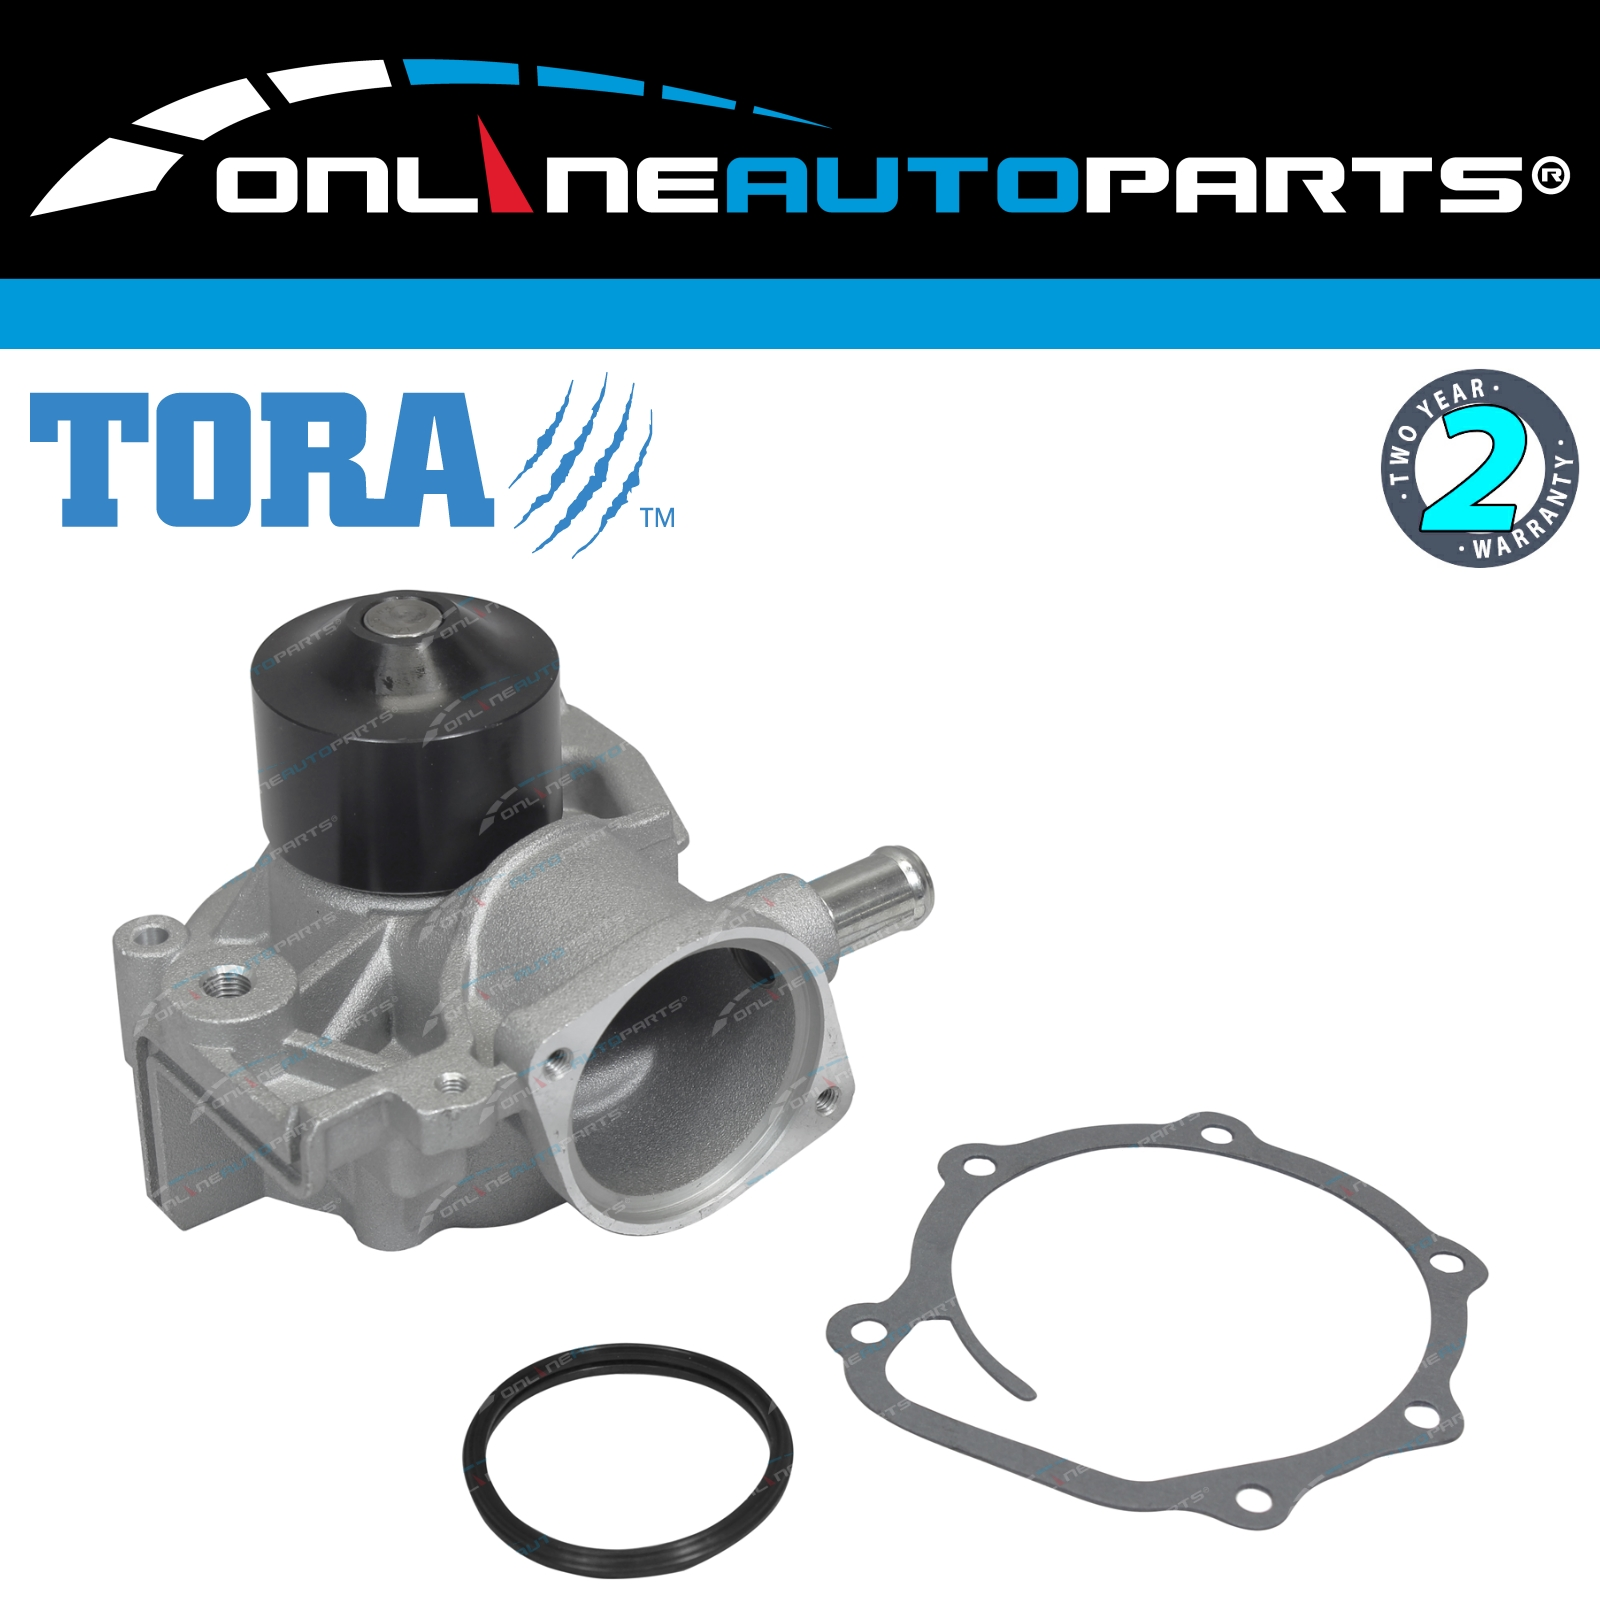 WATER PUMP FOR SUBARU FORESTER 2.0 AWD SF,SF5 1997-2002